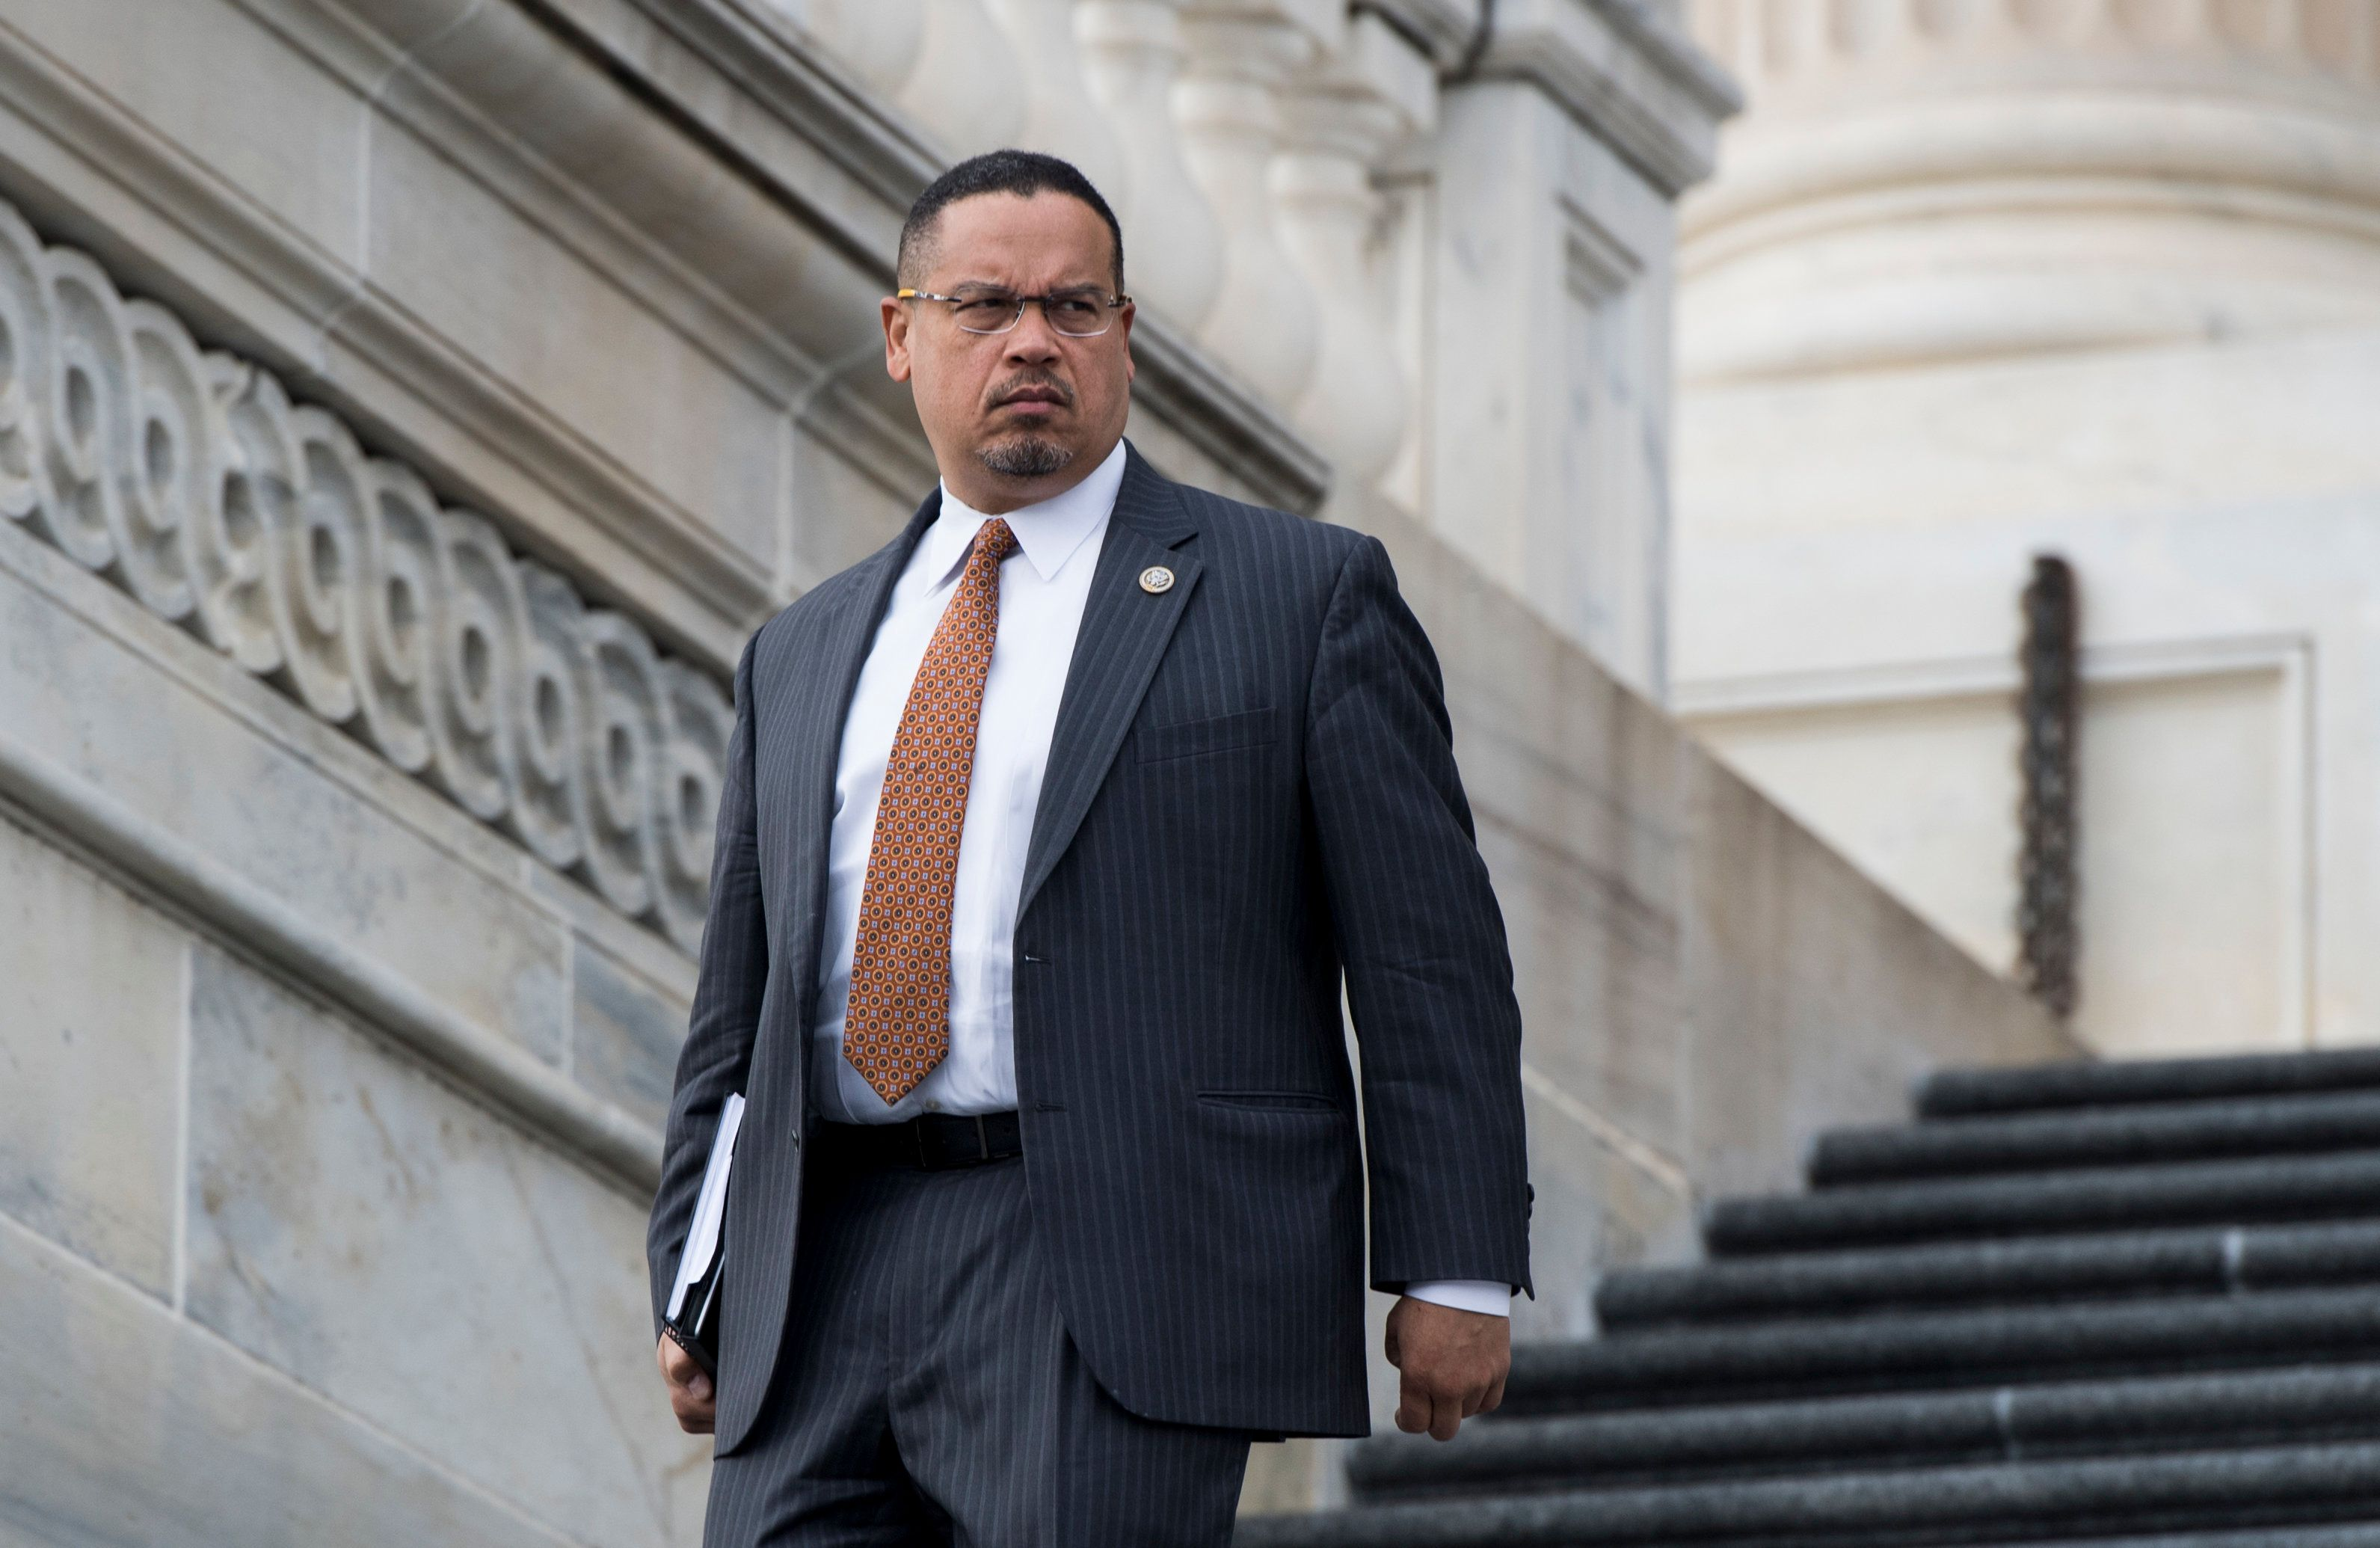 UNITED STATES - JANUARY 11: Rep. Keith Ellison, D-Minn., walks down the House steps after the final votes of the week on Thursday, Jan. 11, 2018. (Photo By Bill Clark/CQ Roll Call)